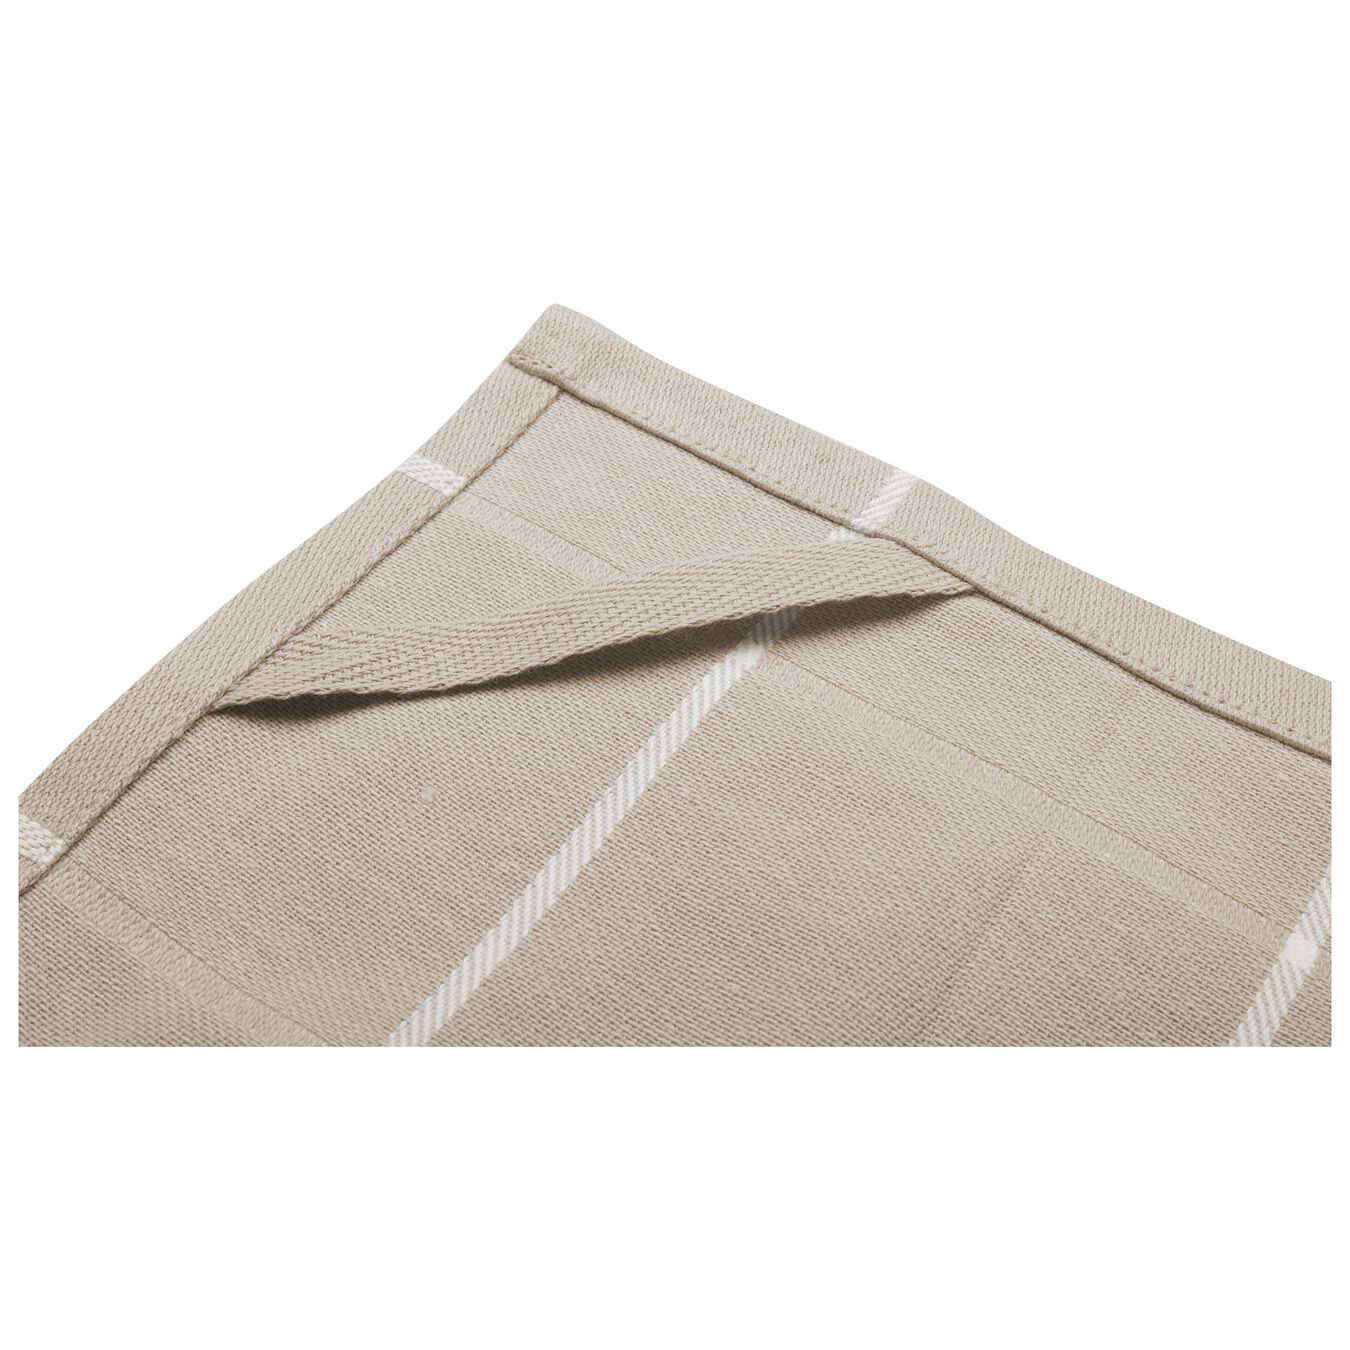 2 Piece 2 Piece Kitchen towel set checkered, taupe,,large 5